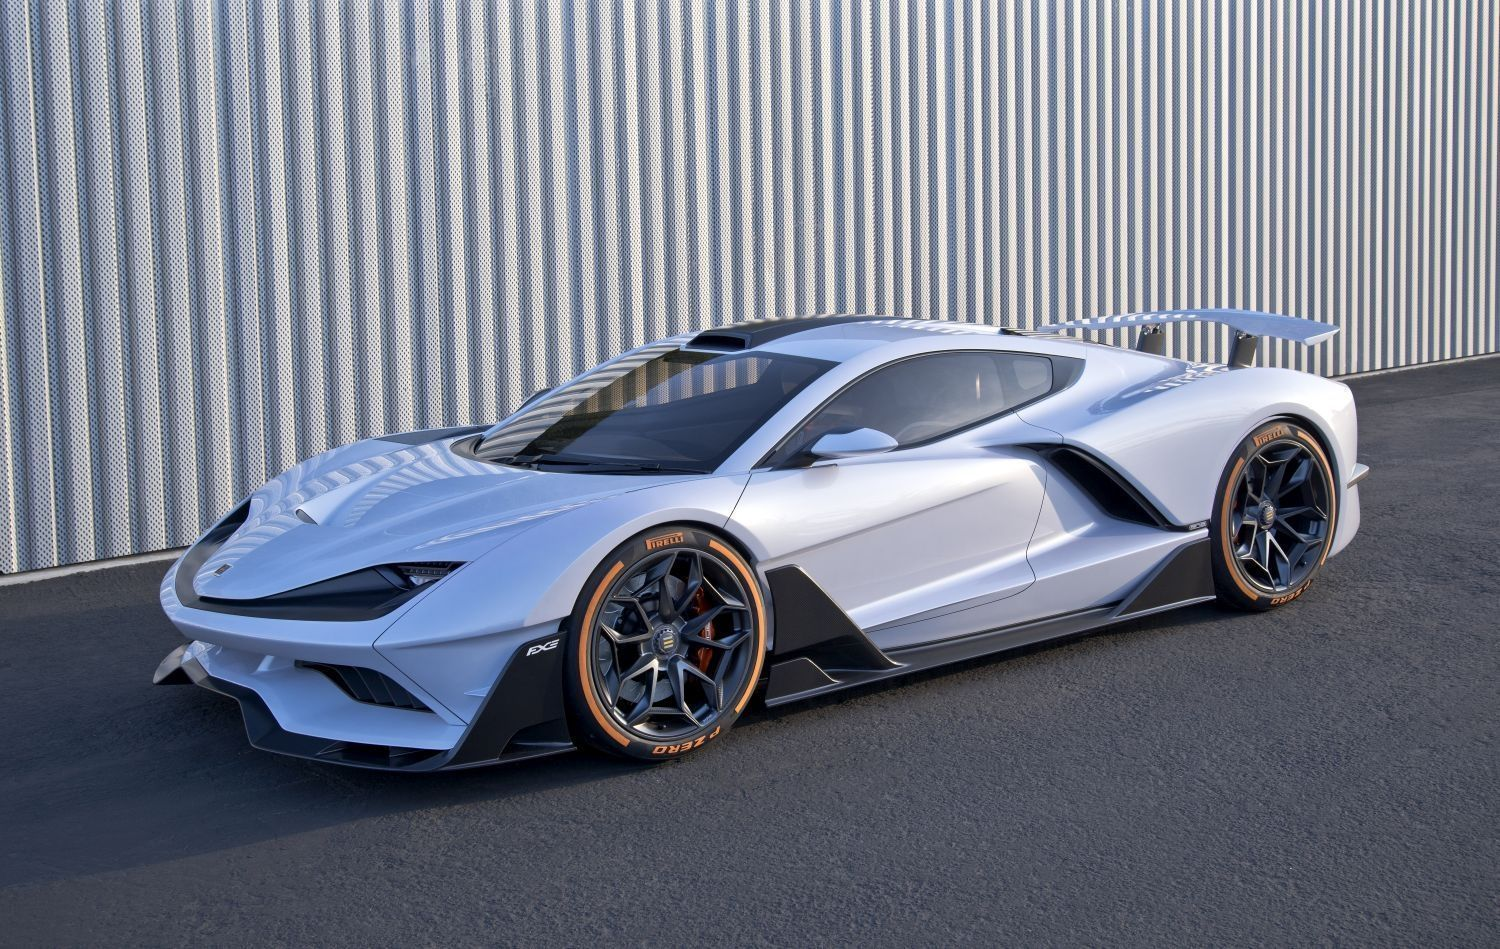 The Aria FXE Is an American-Made 1150-HP Hybrid Supercar